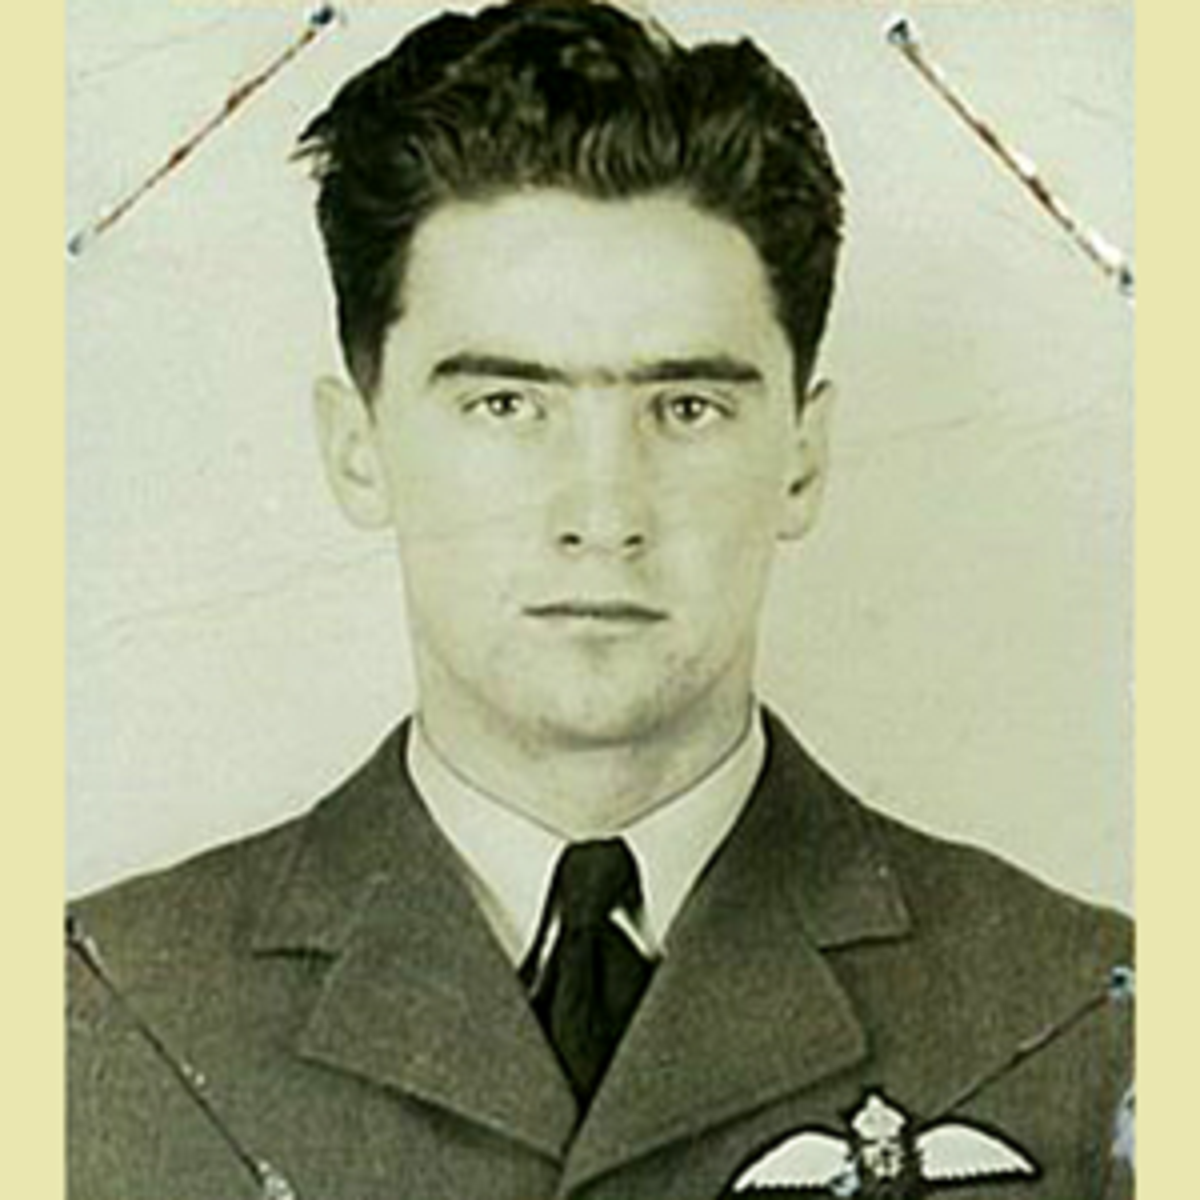 3-WWII-graduation-22-years-old